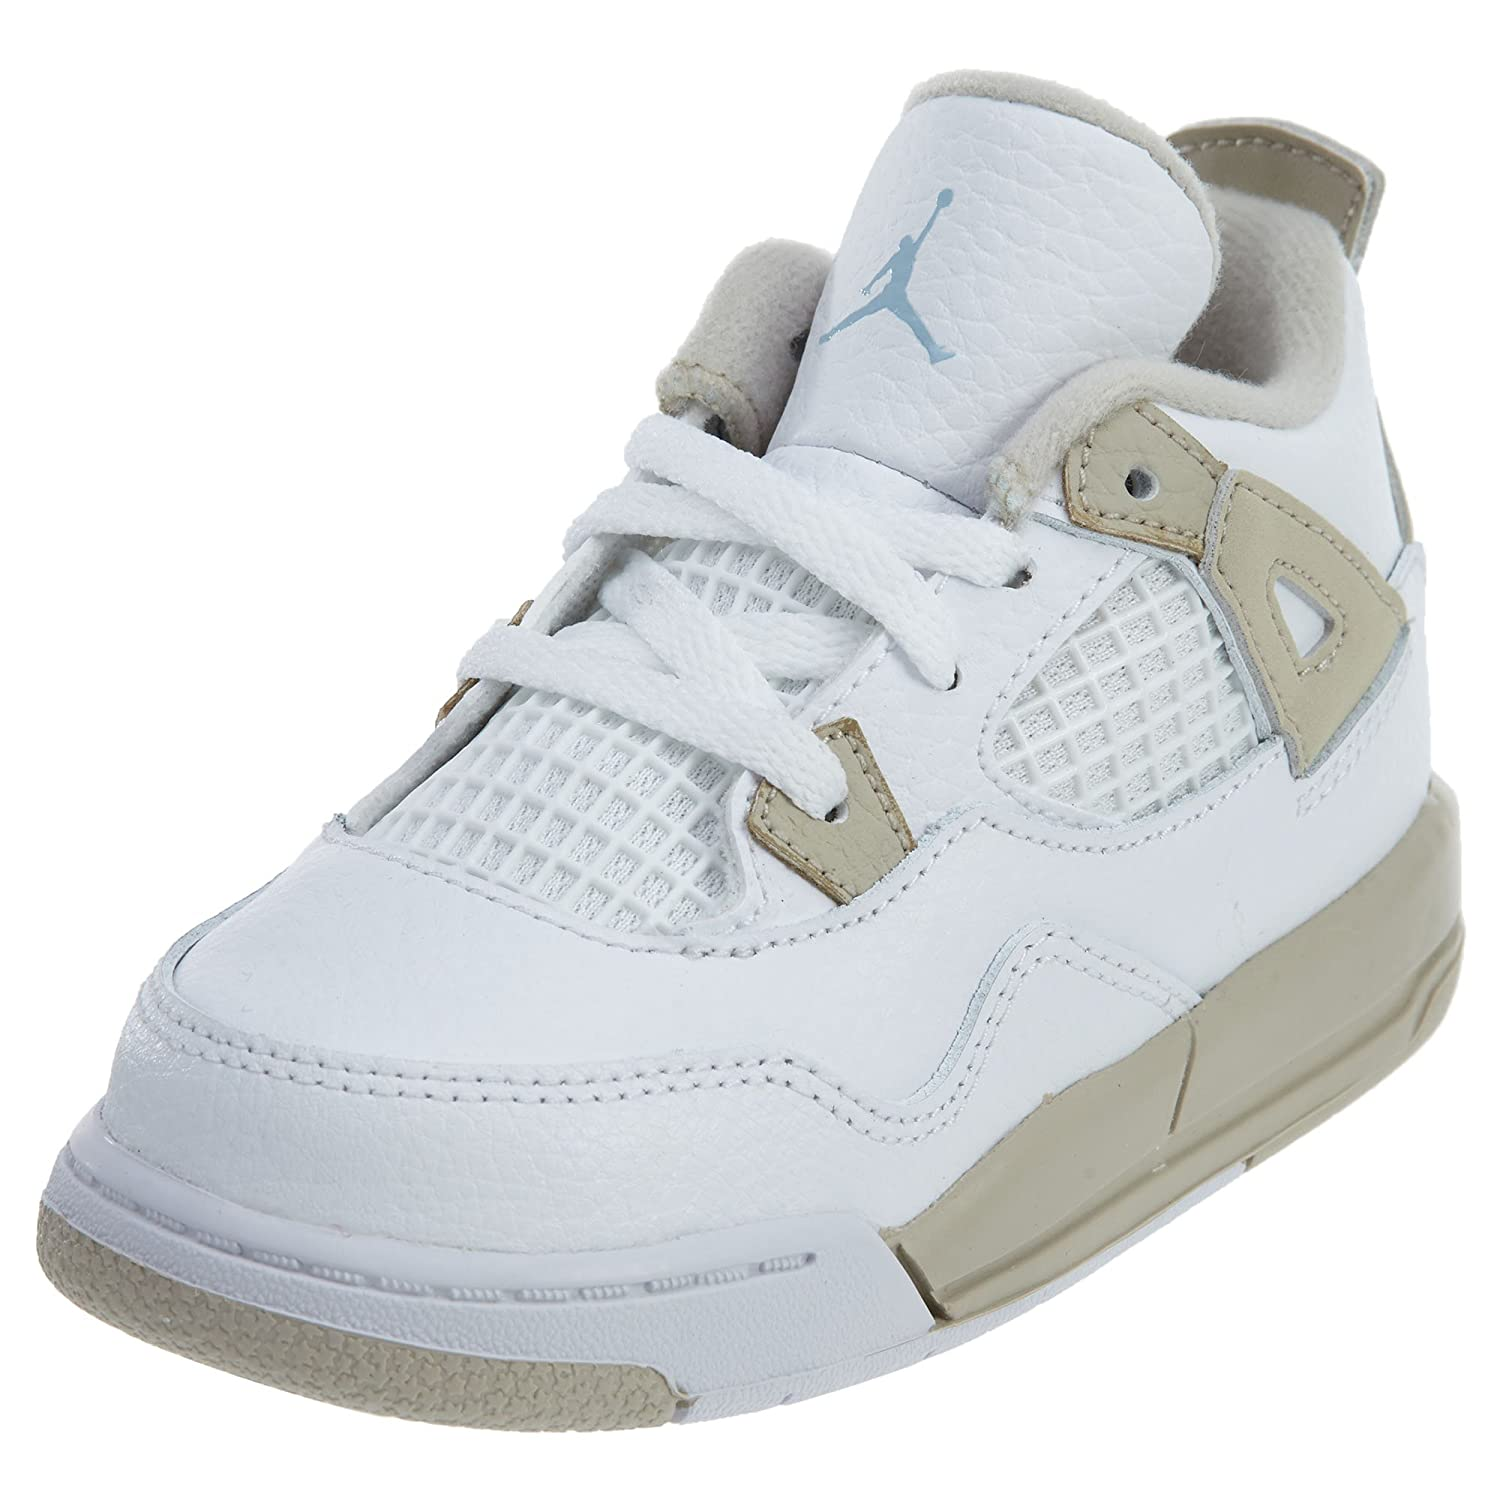 size 40 d550a b7467 NIKE JORDAN TODDLER JORDAN 4 RETRO GT SHOES WHITE BOARDER BLUE LIGHT SAND  SIZE 10